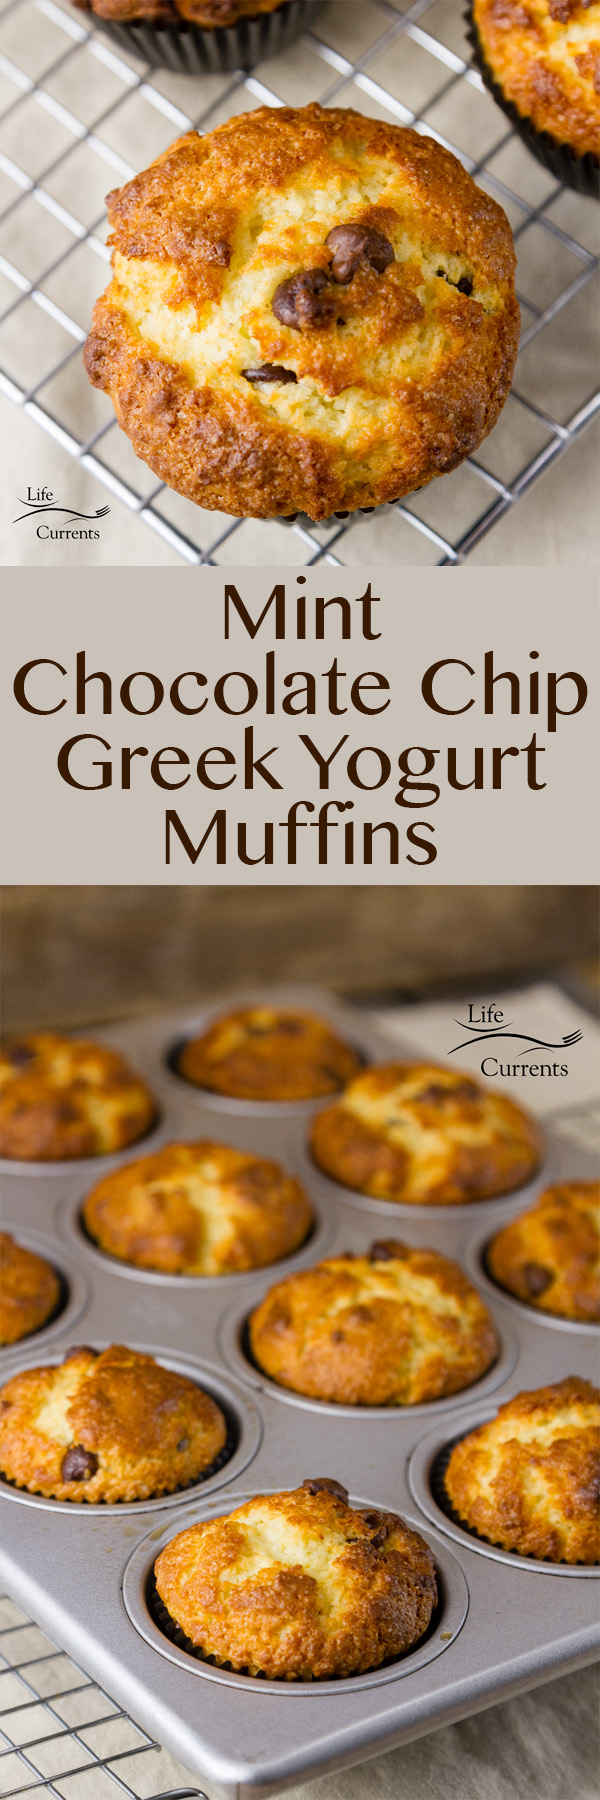 Mint Chocolate Chip Greek Yogurt Muffins - A perfect combination of fresh minty flavor, sweet chocolate chips, and healthy yogurt in a nice sturdy muffin. Easy and delicious, these healthy minty yogurt muffins are packed with flavor.